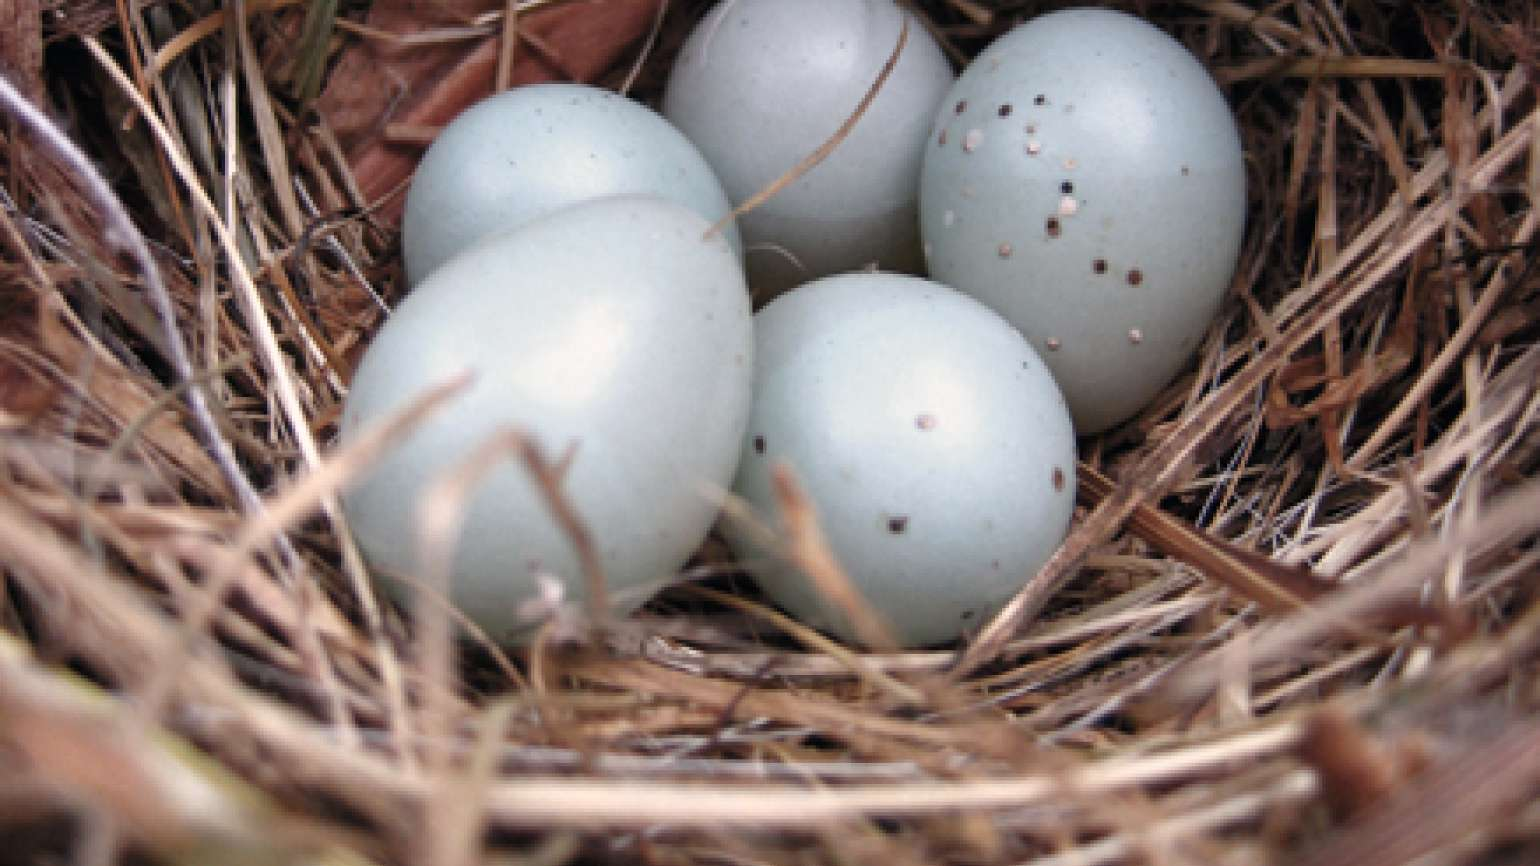 A bird's nest with five gray eggs